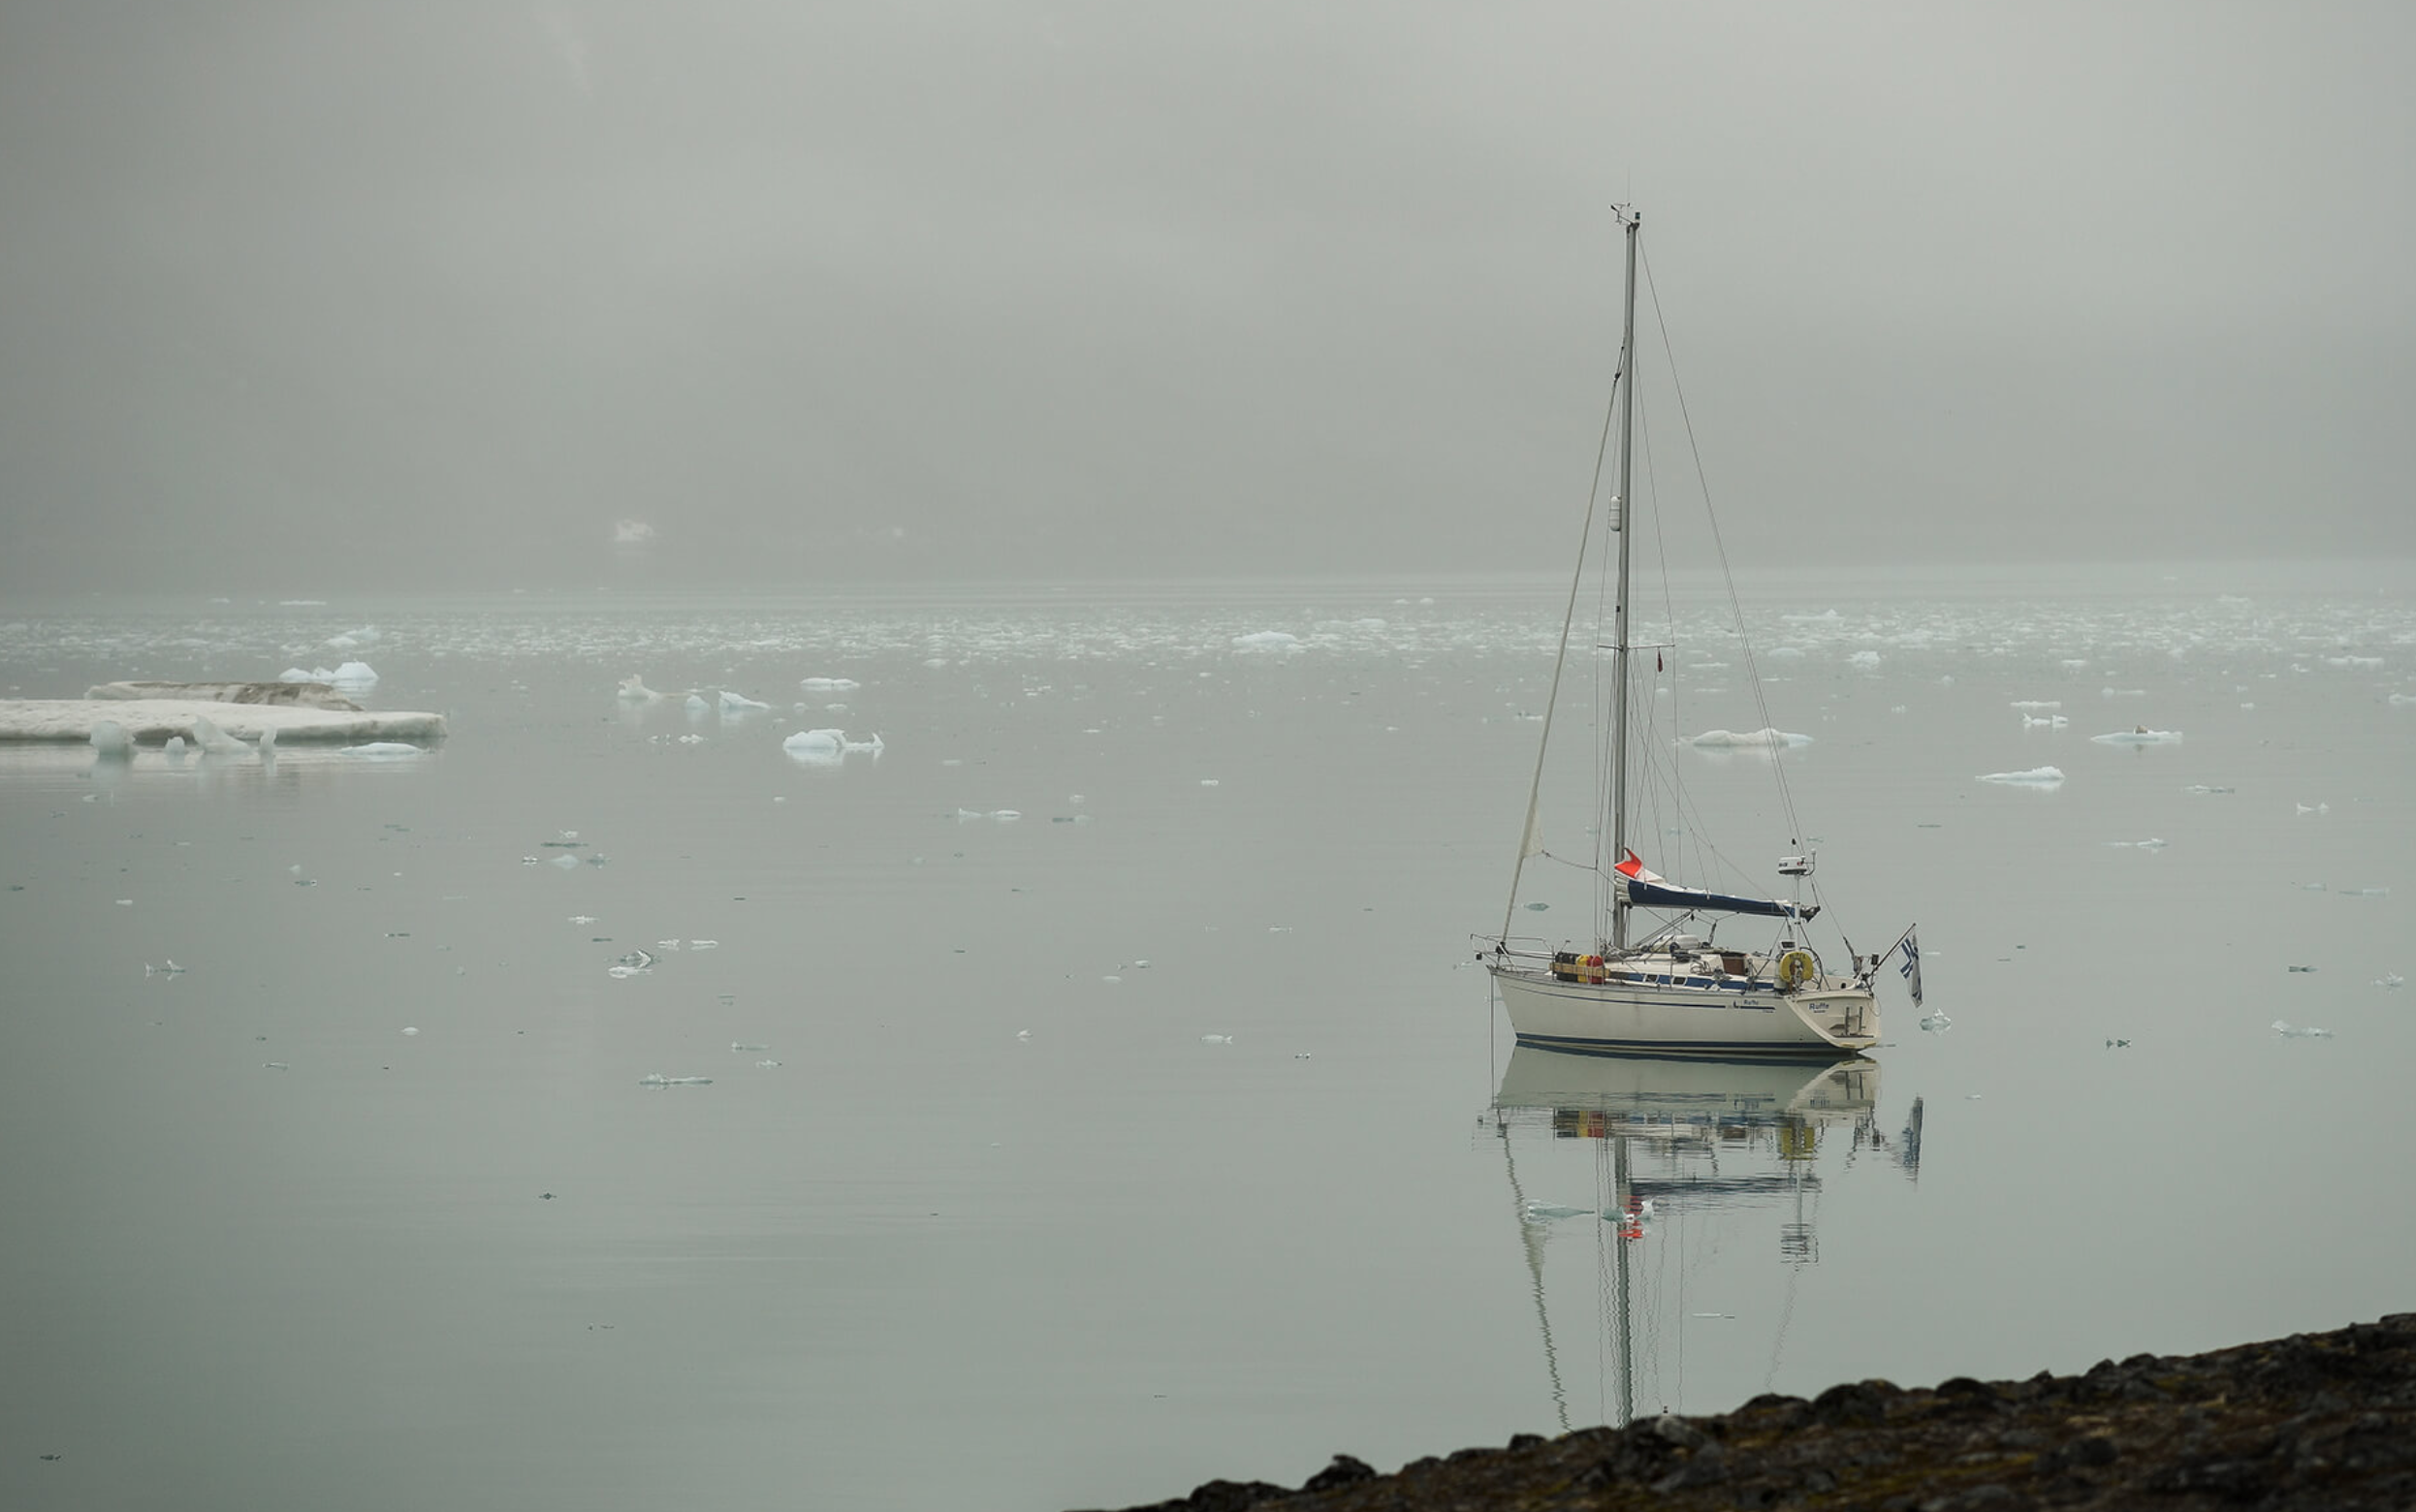 S/Y Ruffe anchored in the Arctic waters of Svalbard